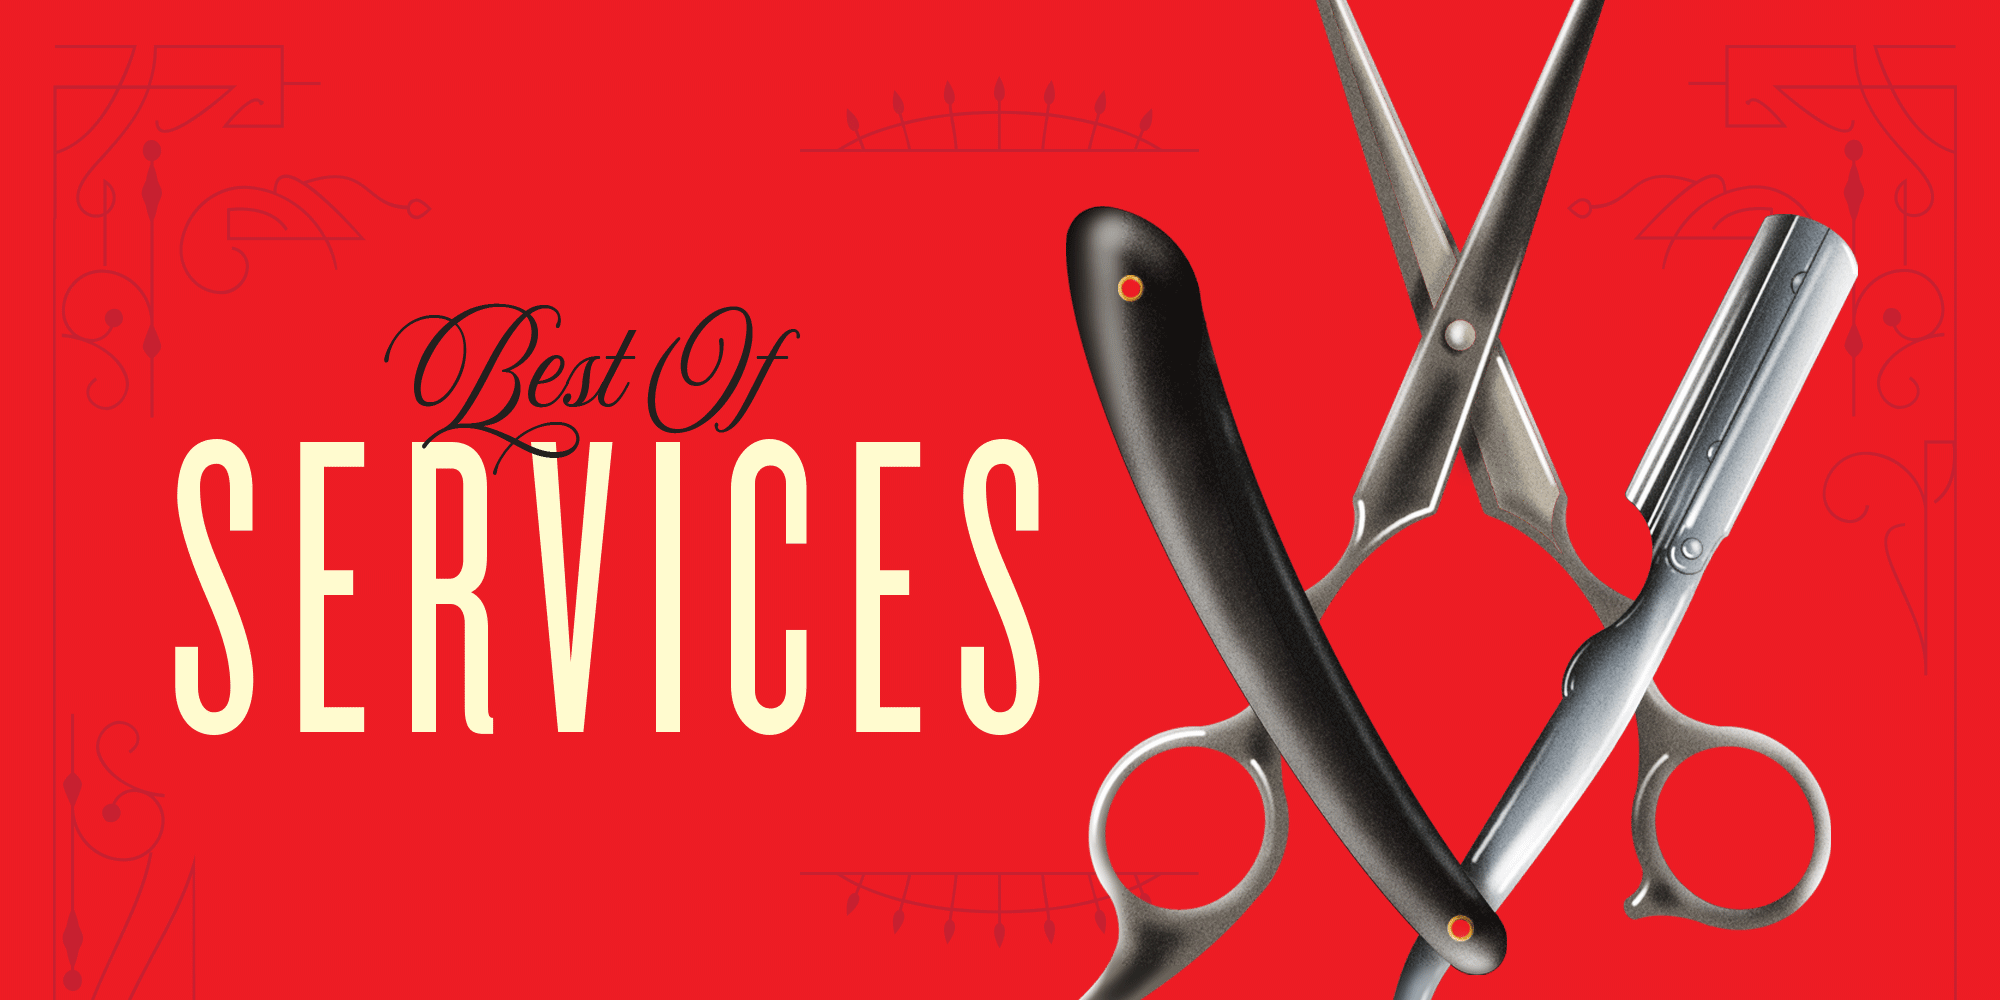 Best of 417 Services Winners